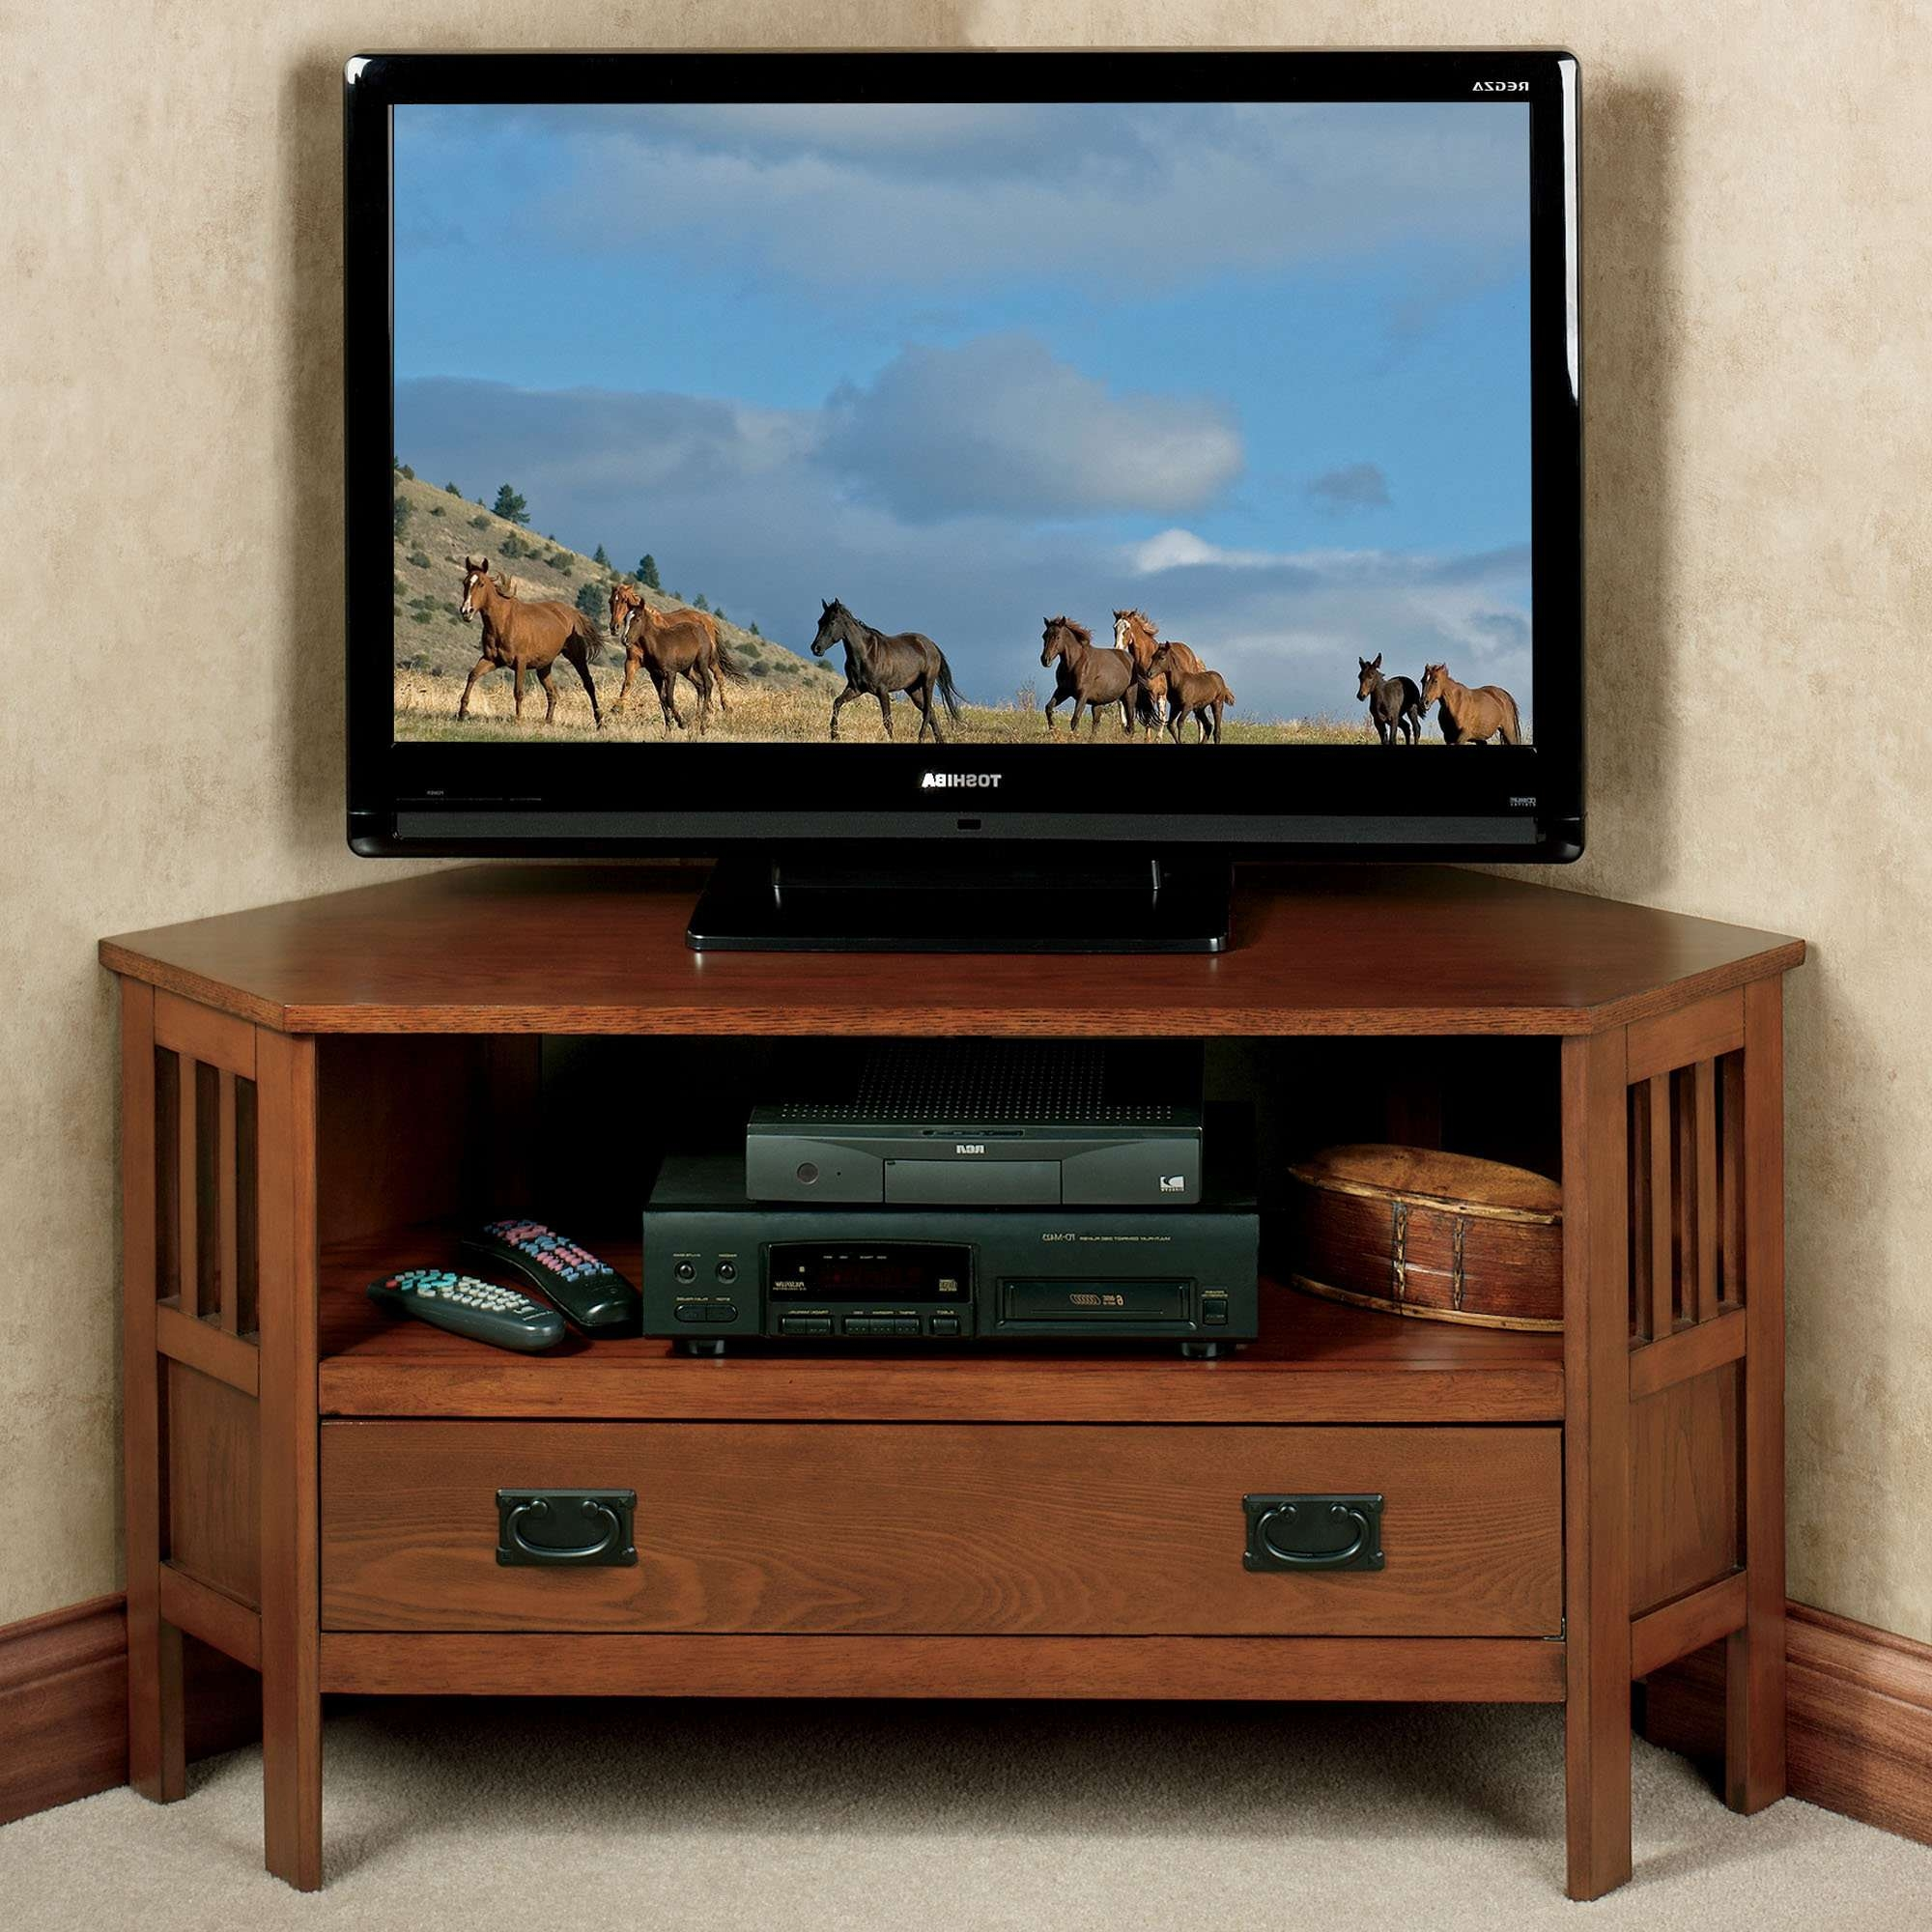 Home Decor: Alluring Wood Tv Stands For Flat Screens With Corner For Light Oak Tv Stands Flat Screen (View 9 of 15)